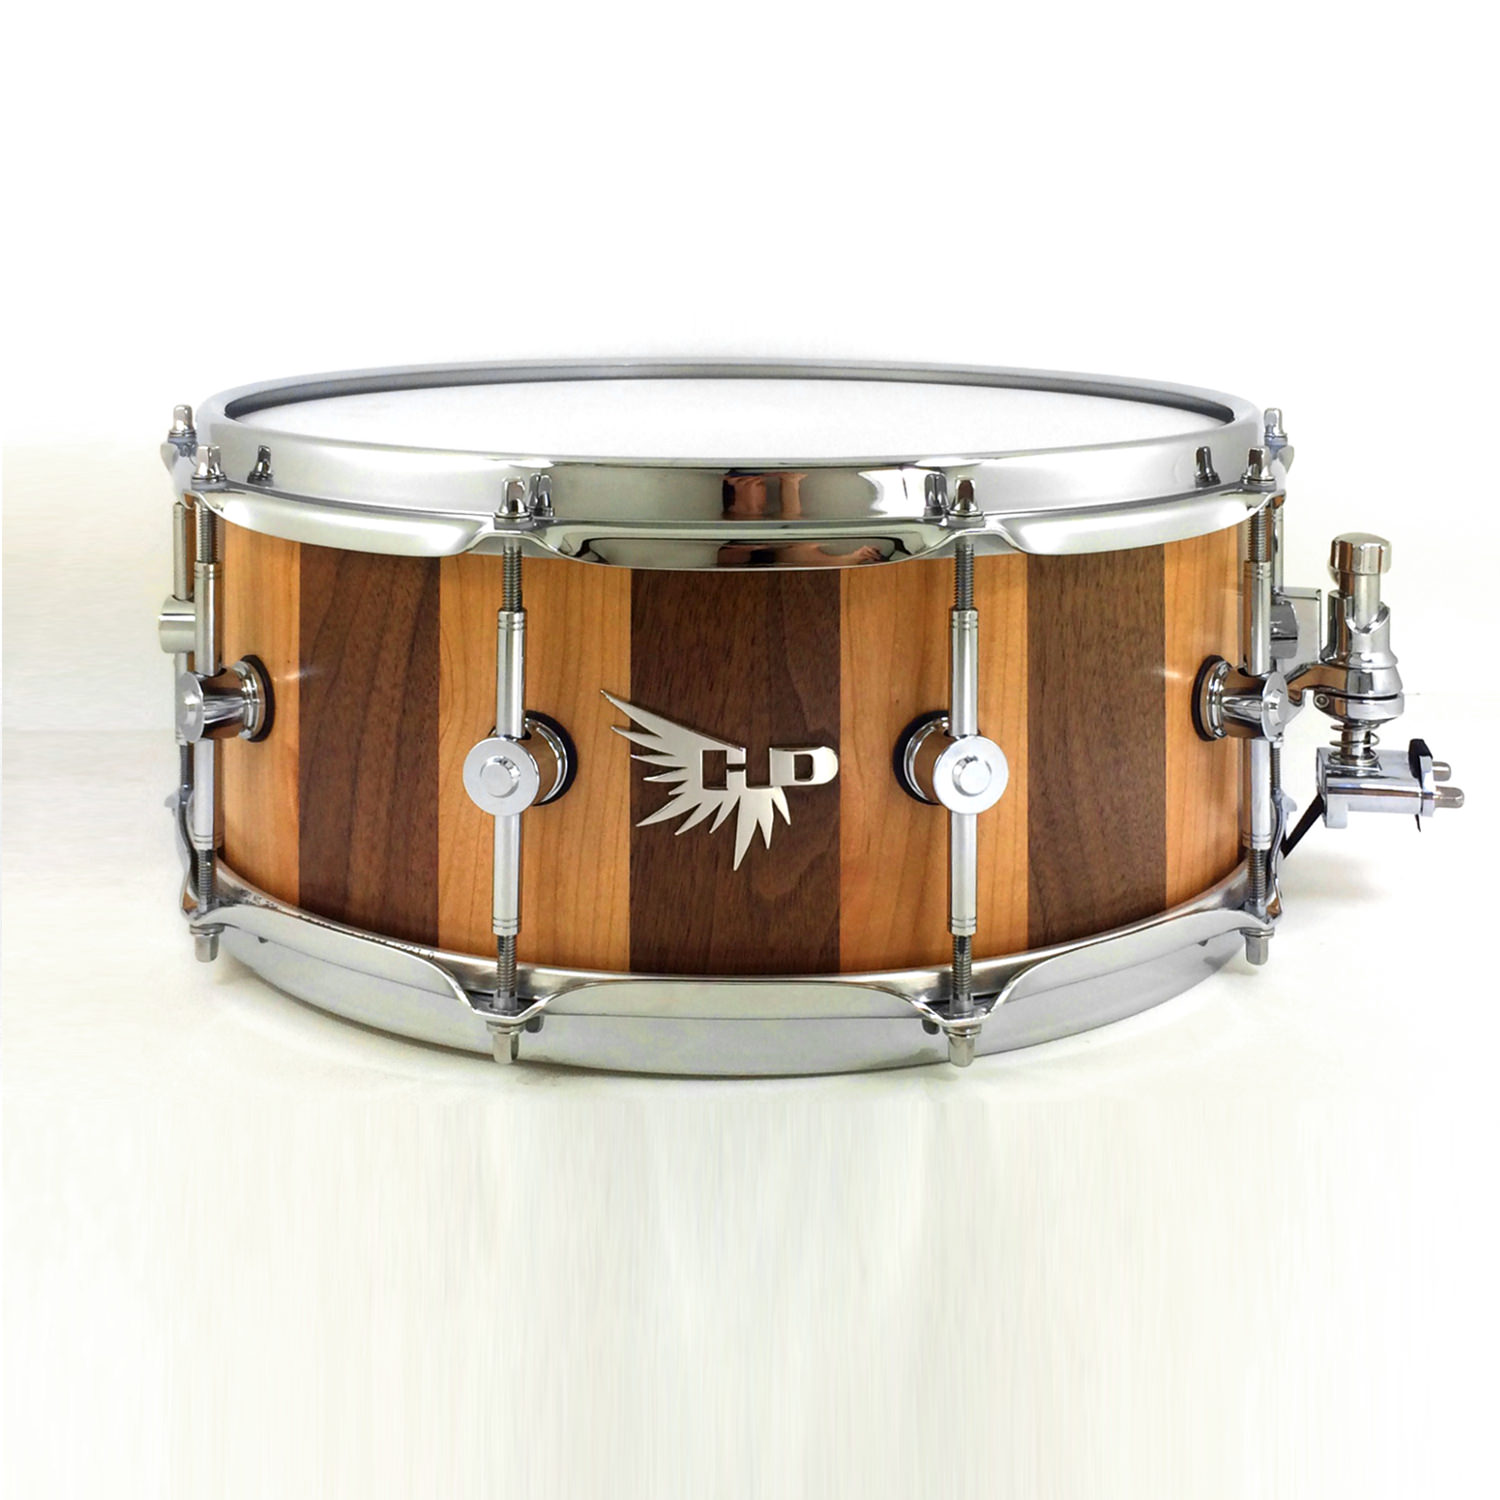 Dominique Austin Snare Drum Hendrix Drums Walnut Cherry Stave